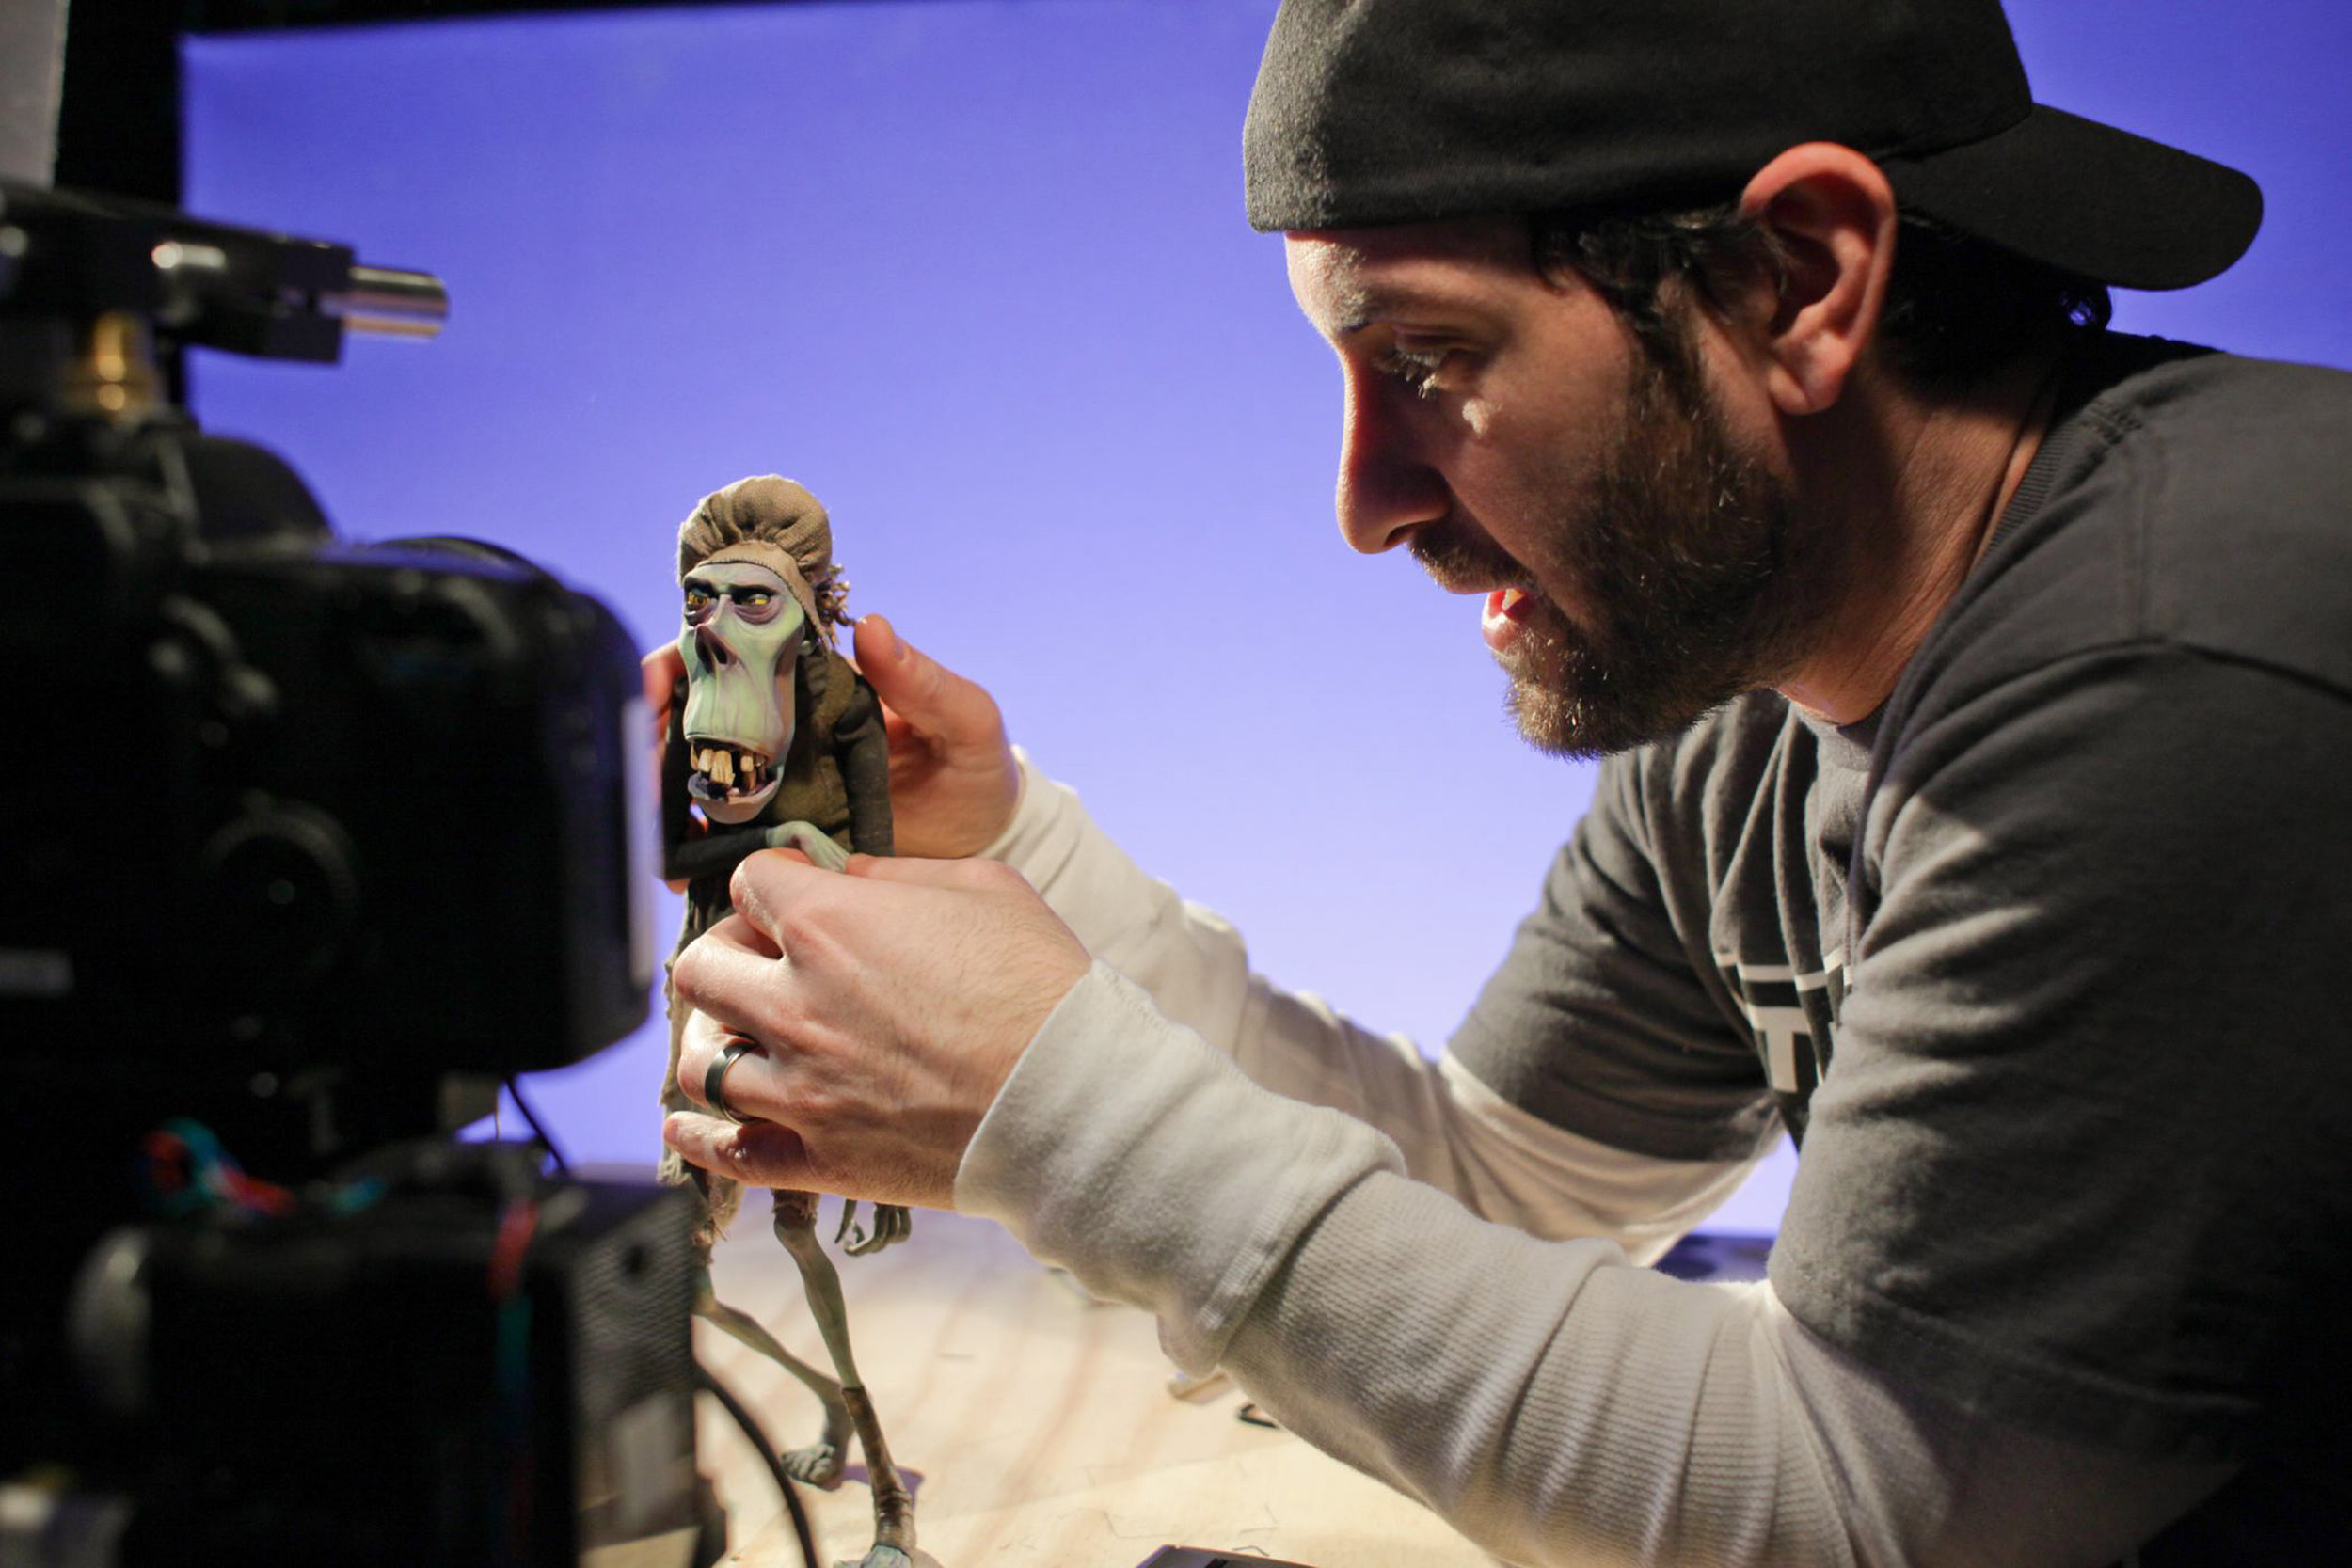 Animation Supervisor Brad Schiff adjusts one of the zombies for his close-up in ParaNorman, the new 3D stop-motion comedy thriller.  Credit: LAIKA, Inc.